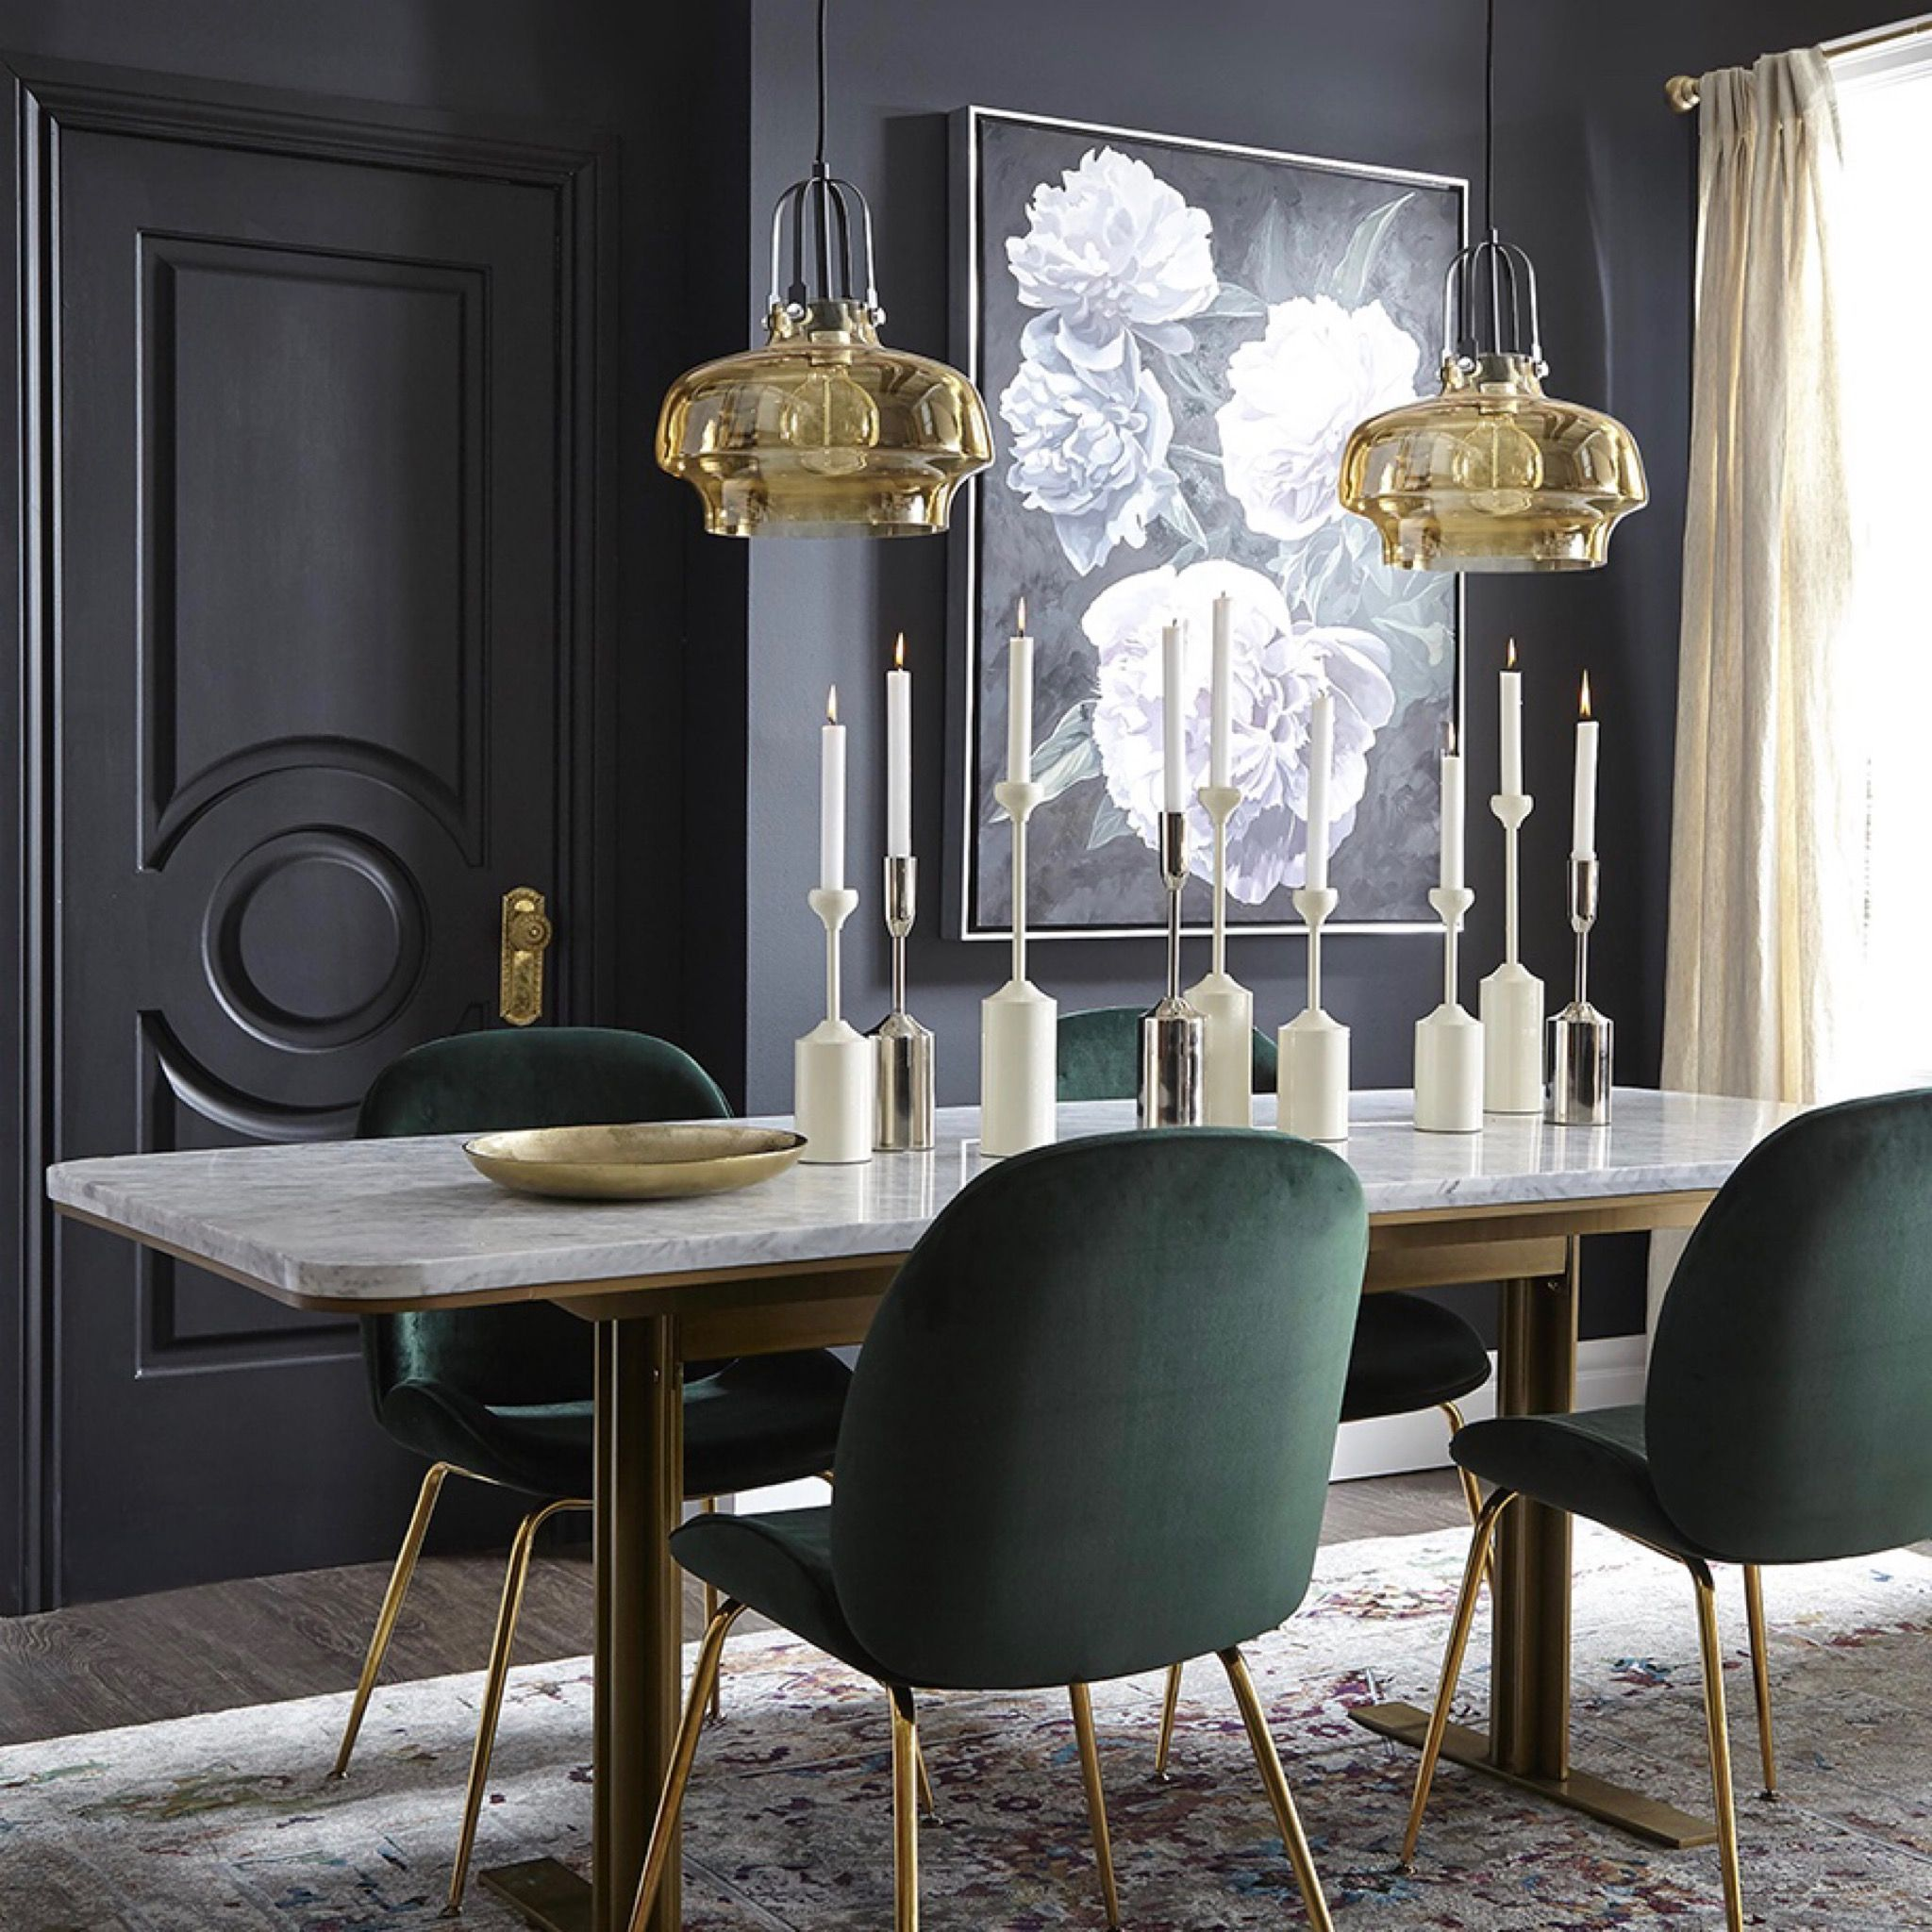 Green Velvet Dining Chairs Marble Table Dark Walls Dining Room